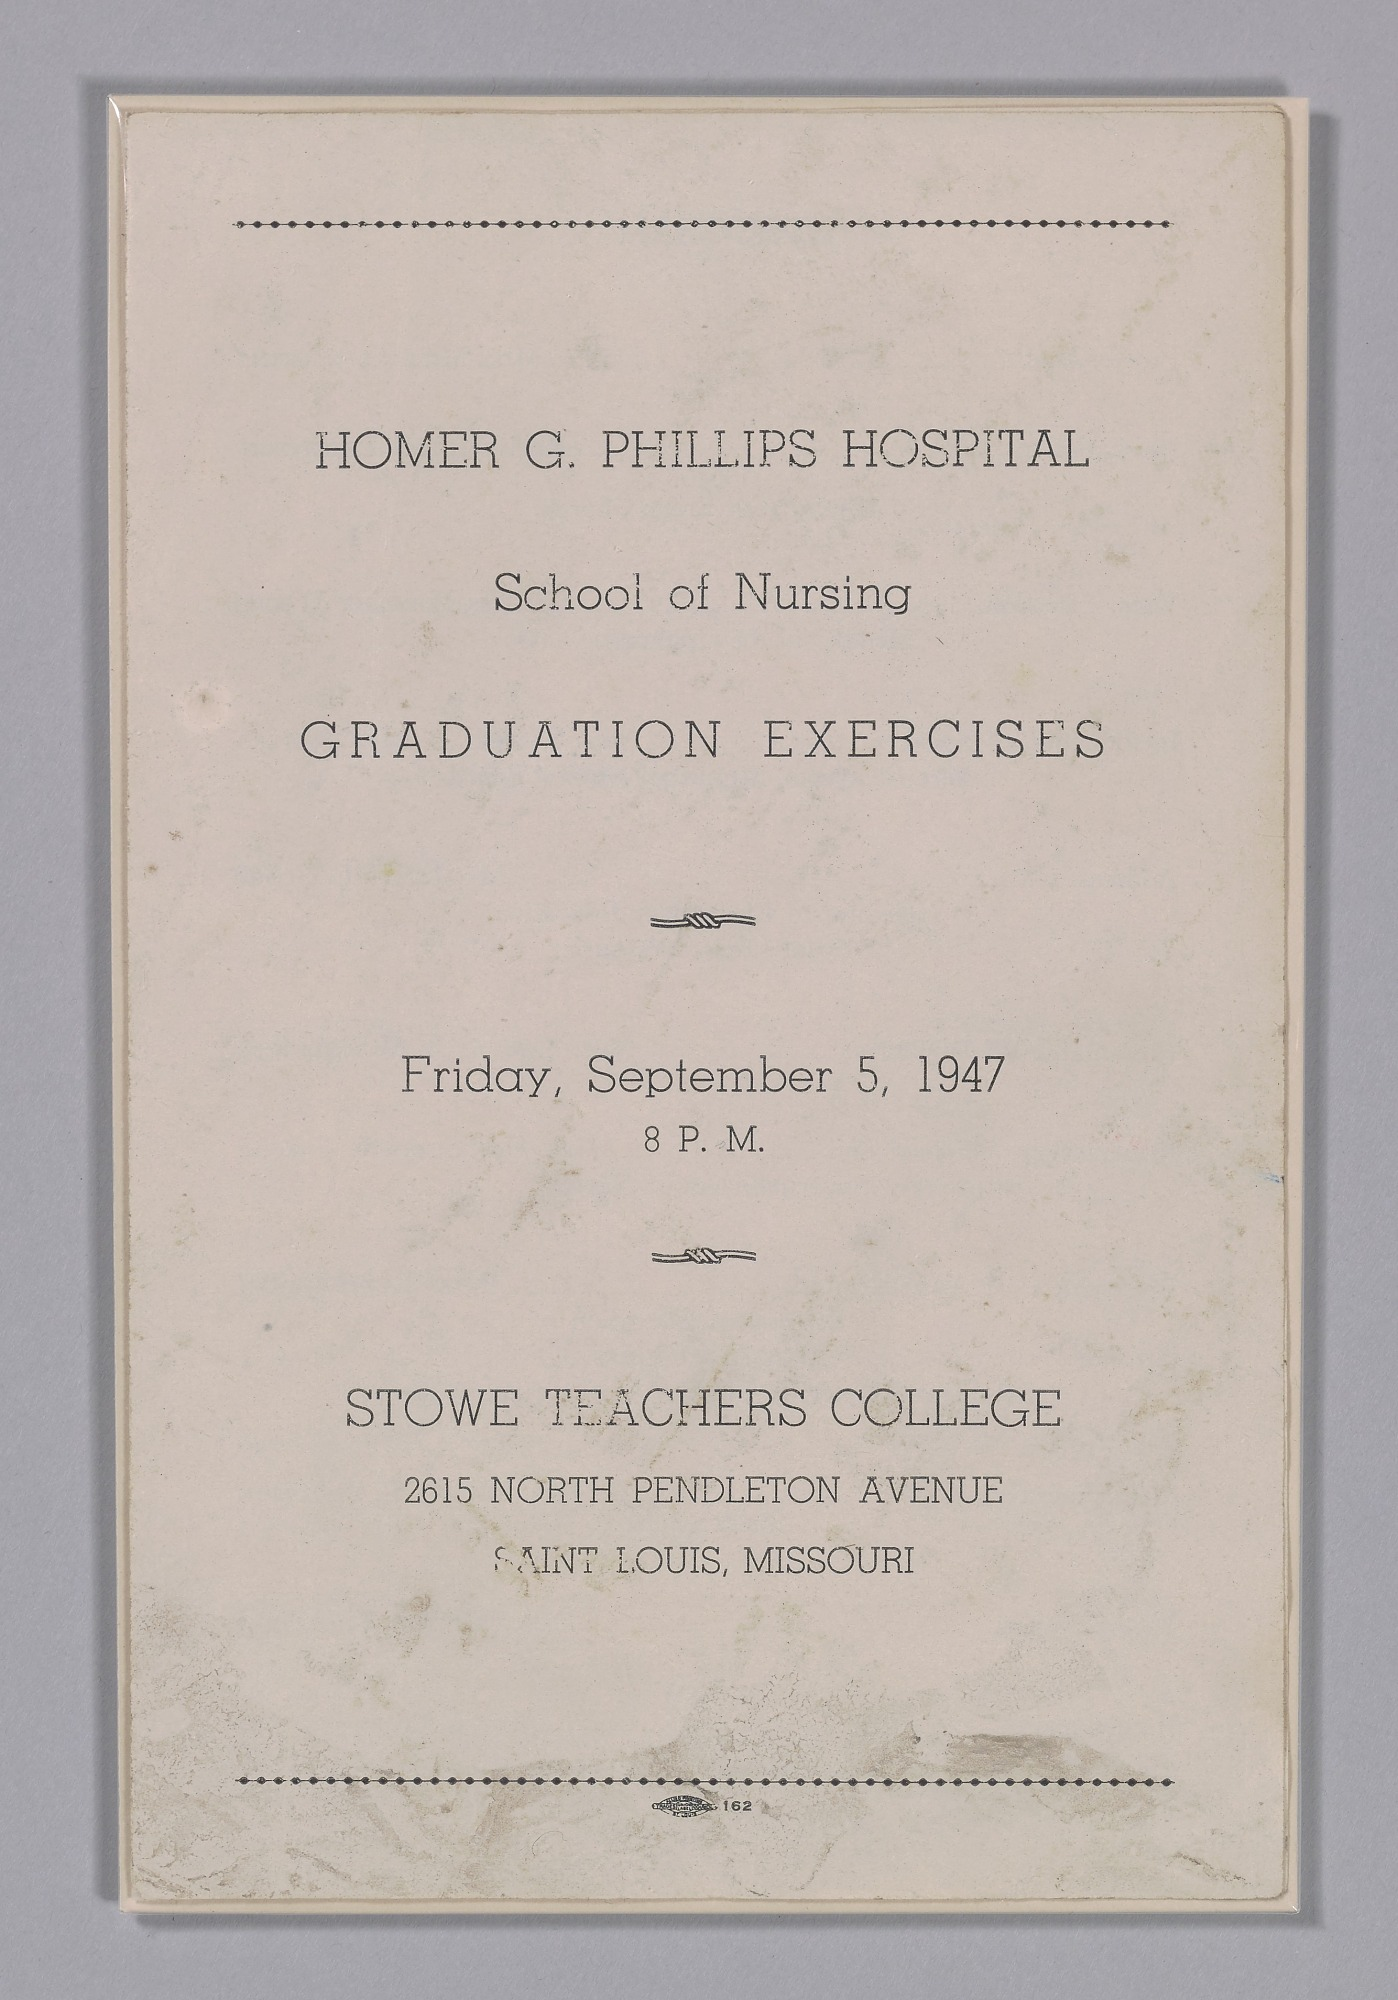 Graduation Program For The Homer G Phillips Hospital School Of